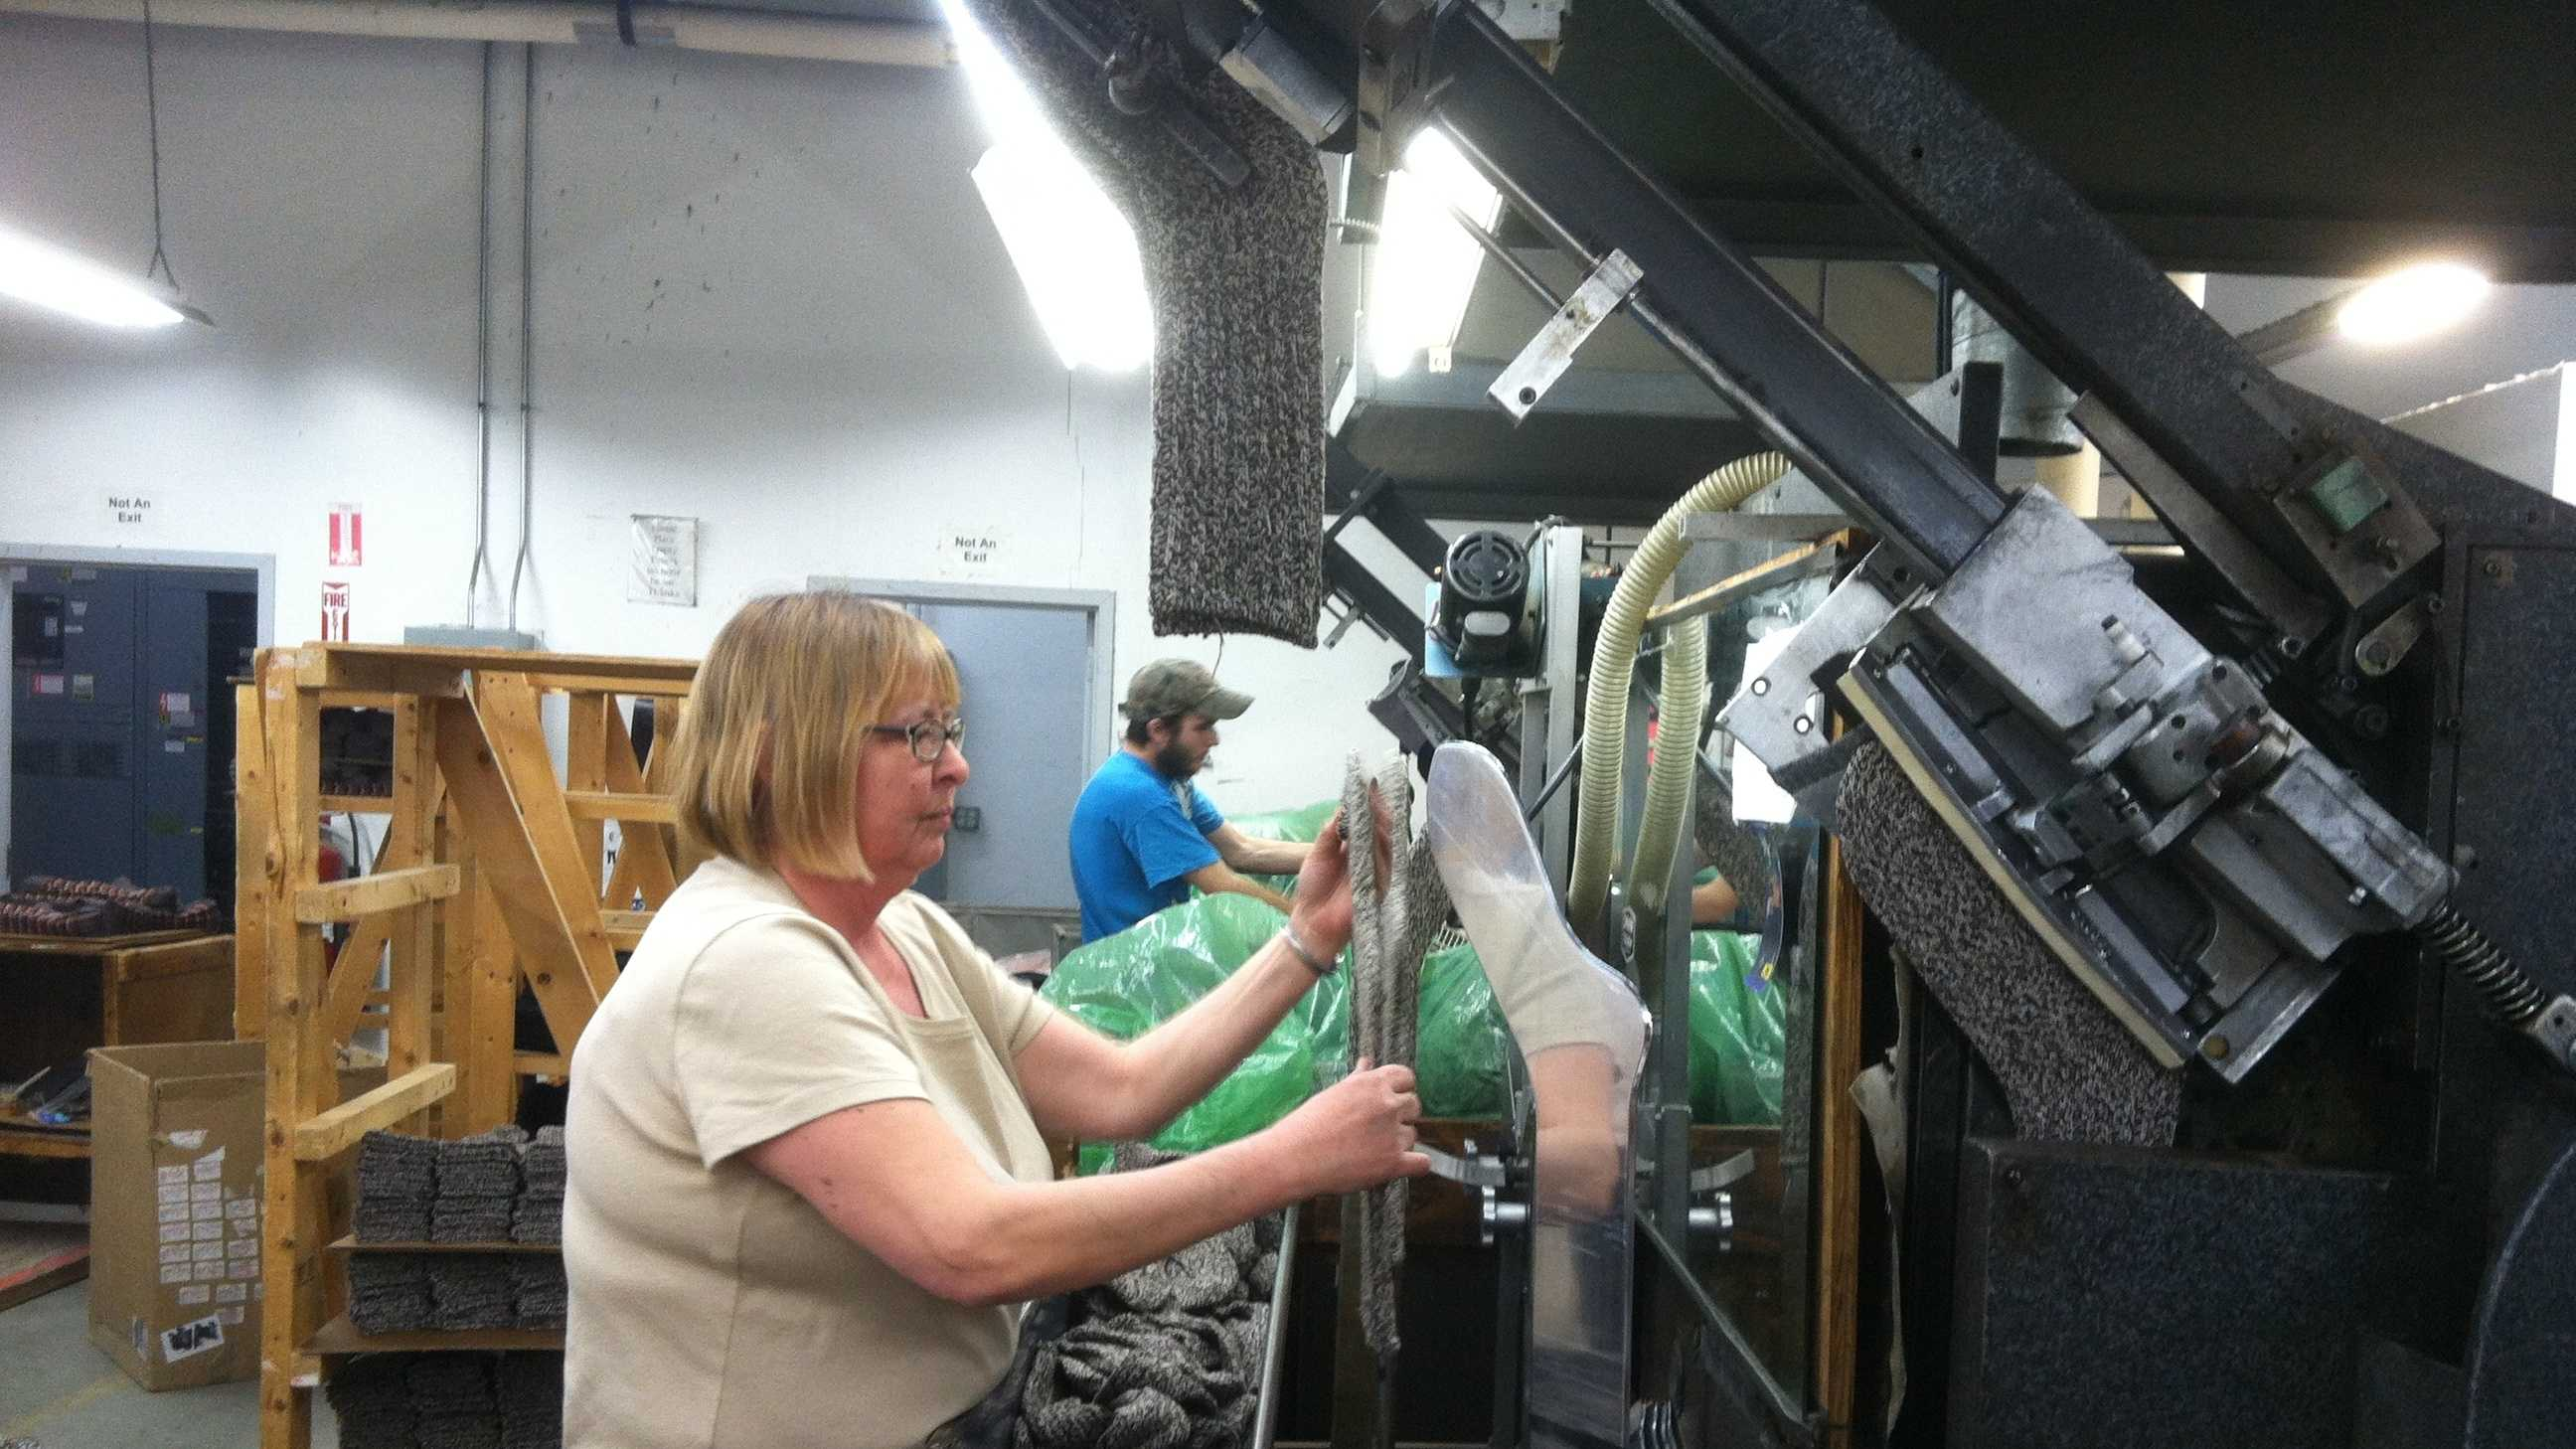 Lisa Morey, a 22 year veteran at Cabot Mills, says loves her work at a company that 'treats me well'.